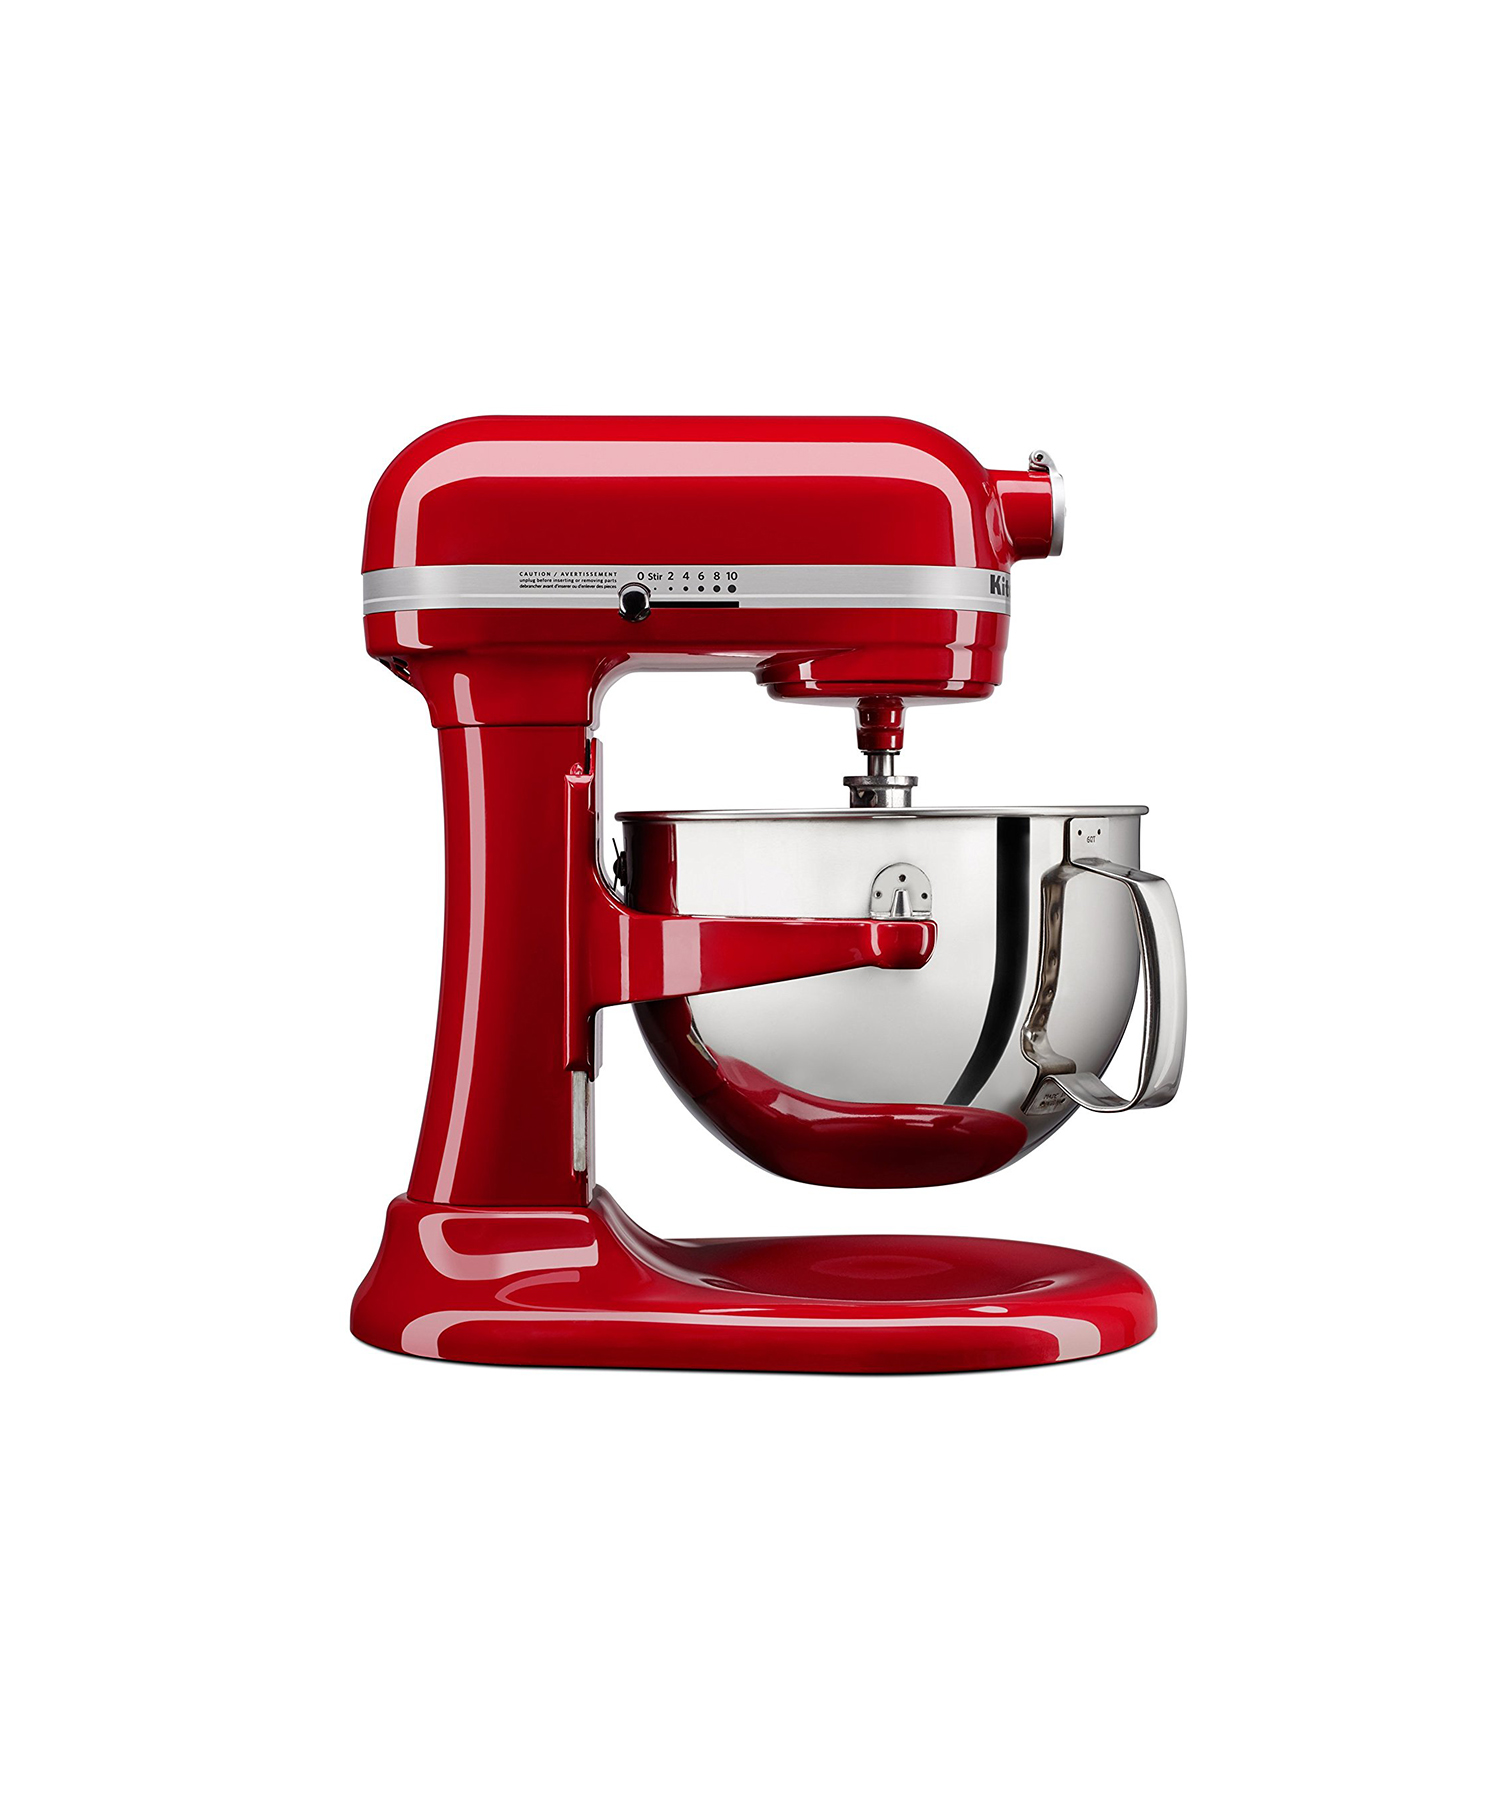 Amazon's Super Cheap Deal on KitchenAid Stand Mixers